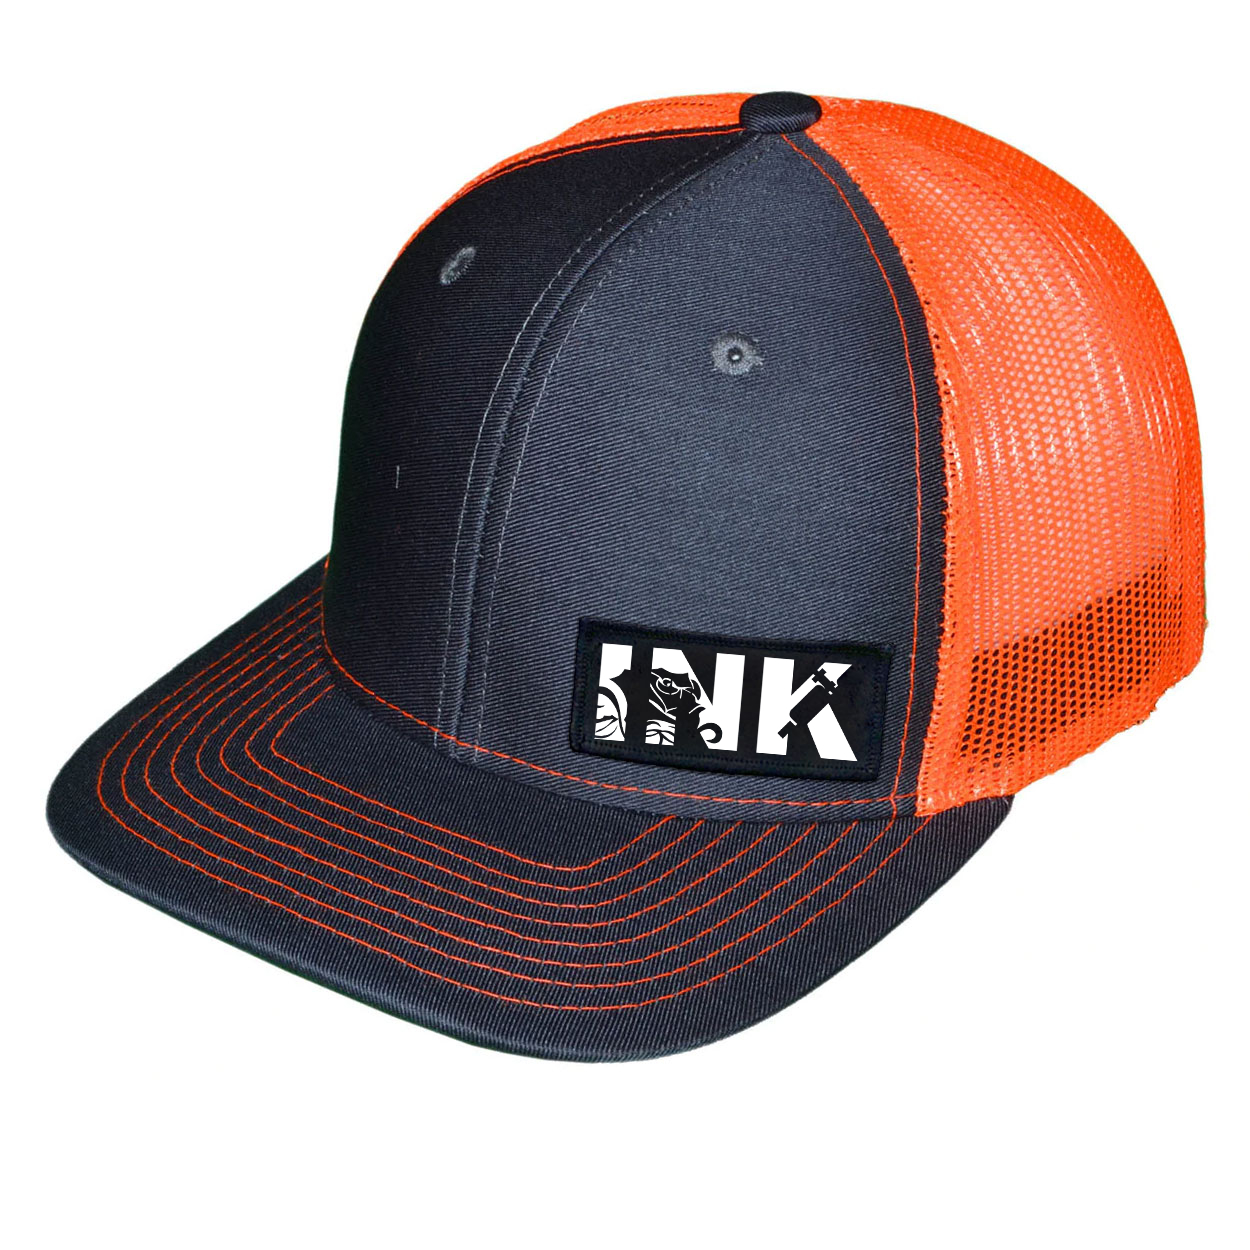 Ink Tattoo Logo Night Out Woven Patch Snapback Trucker Hat Dark Gray/Orange (White Logo)